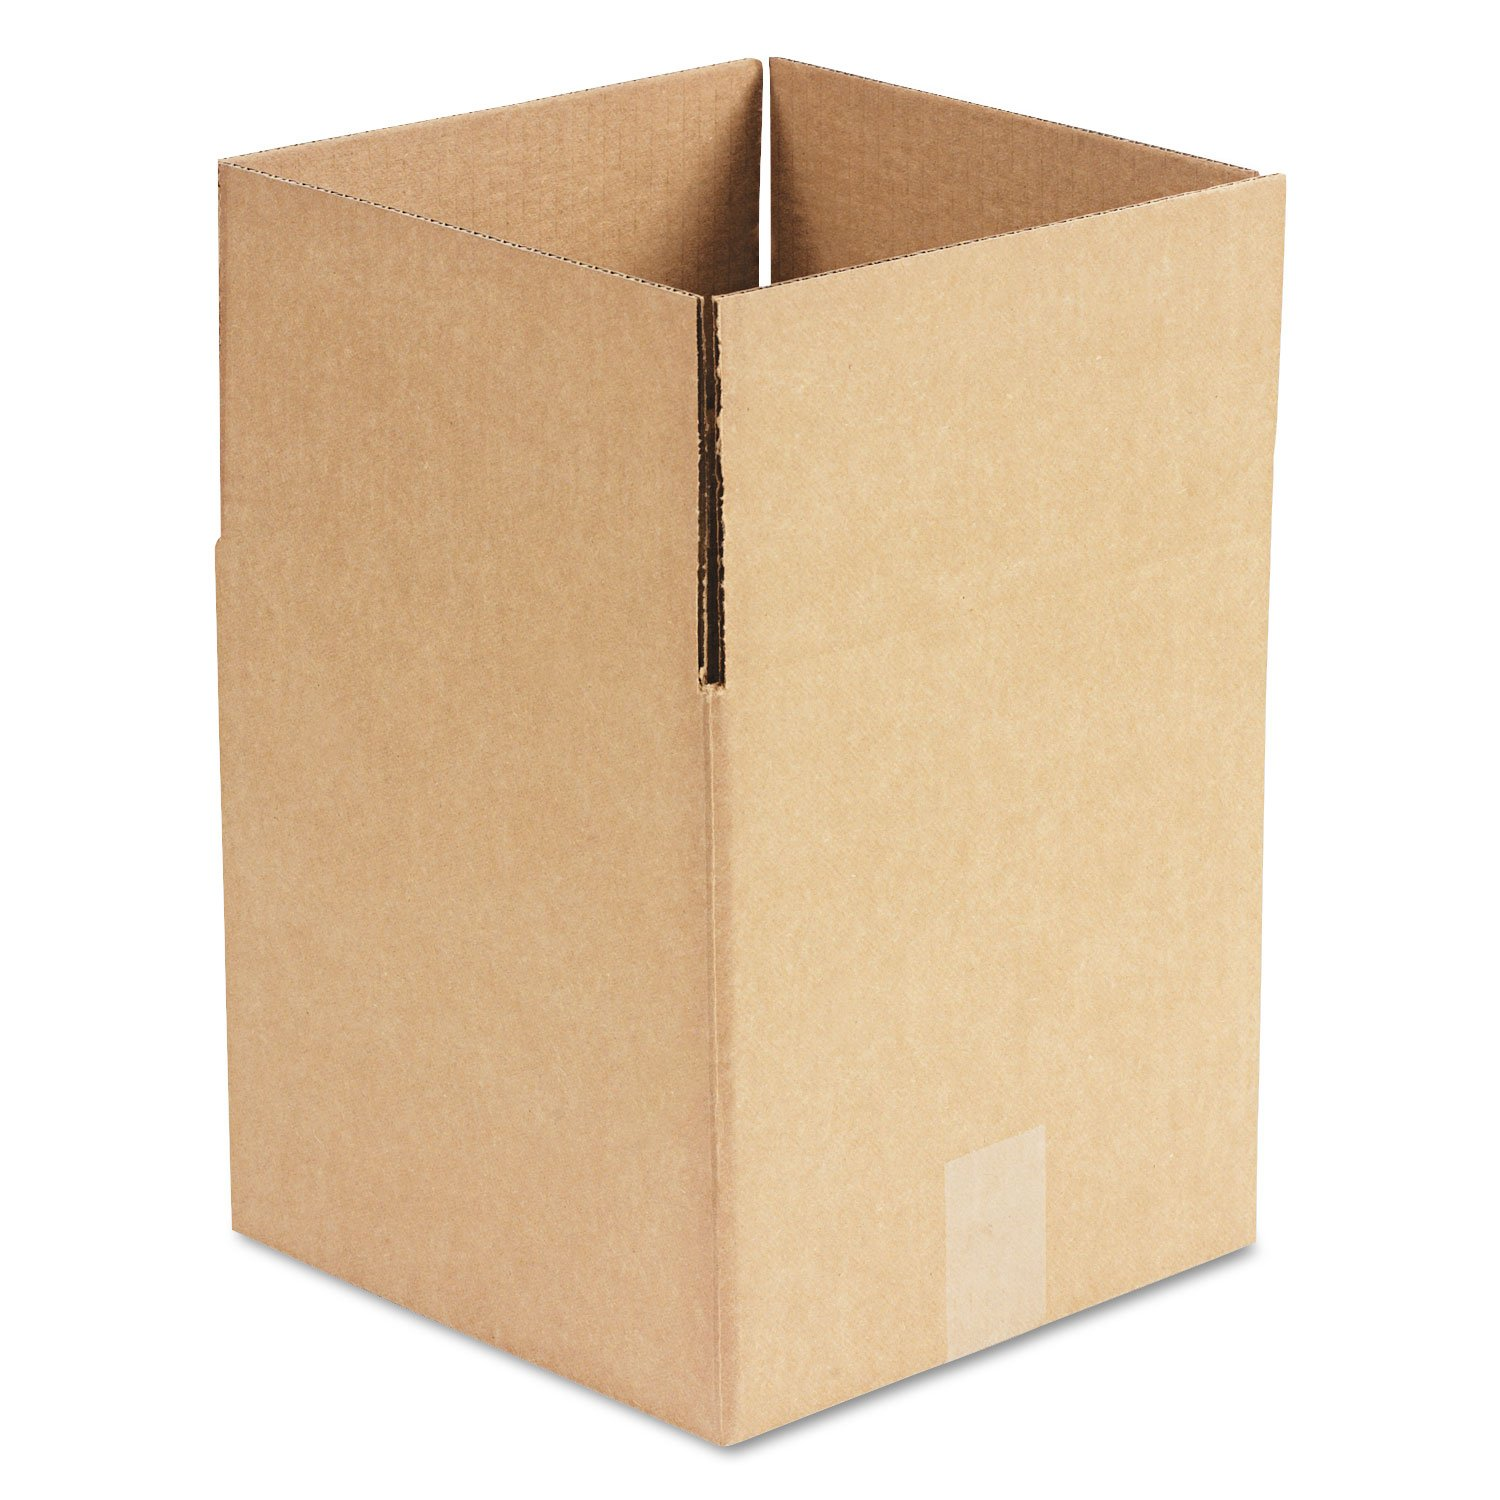 General Supply 101010 Brown Corrugated - Cubed Fixed-Depth Shipping Boxes 10l X 10w X 10h, 25/Bundle